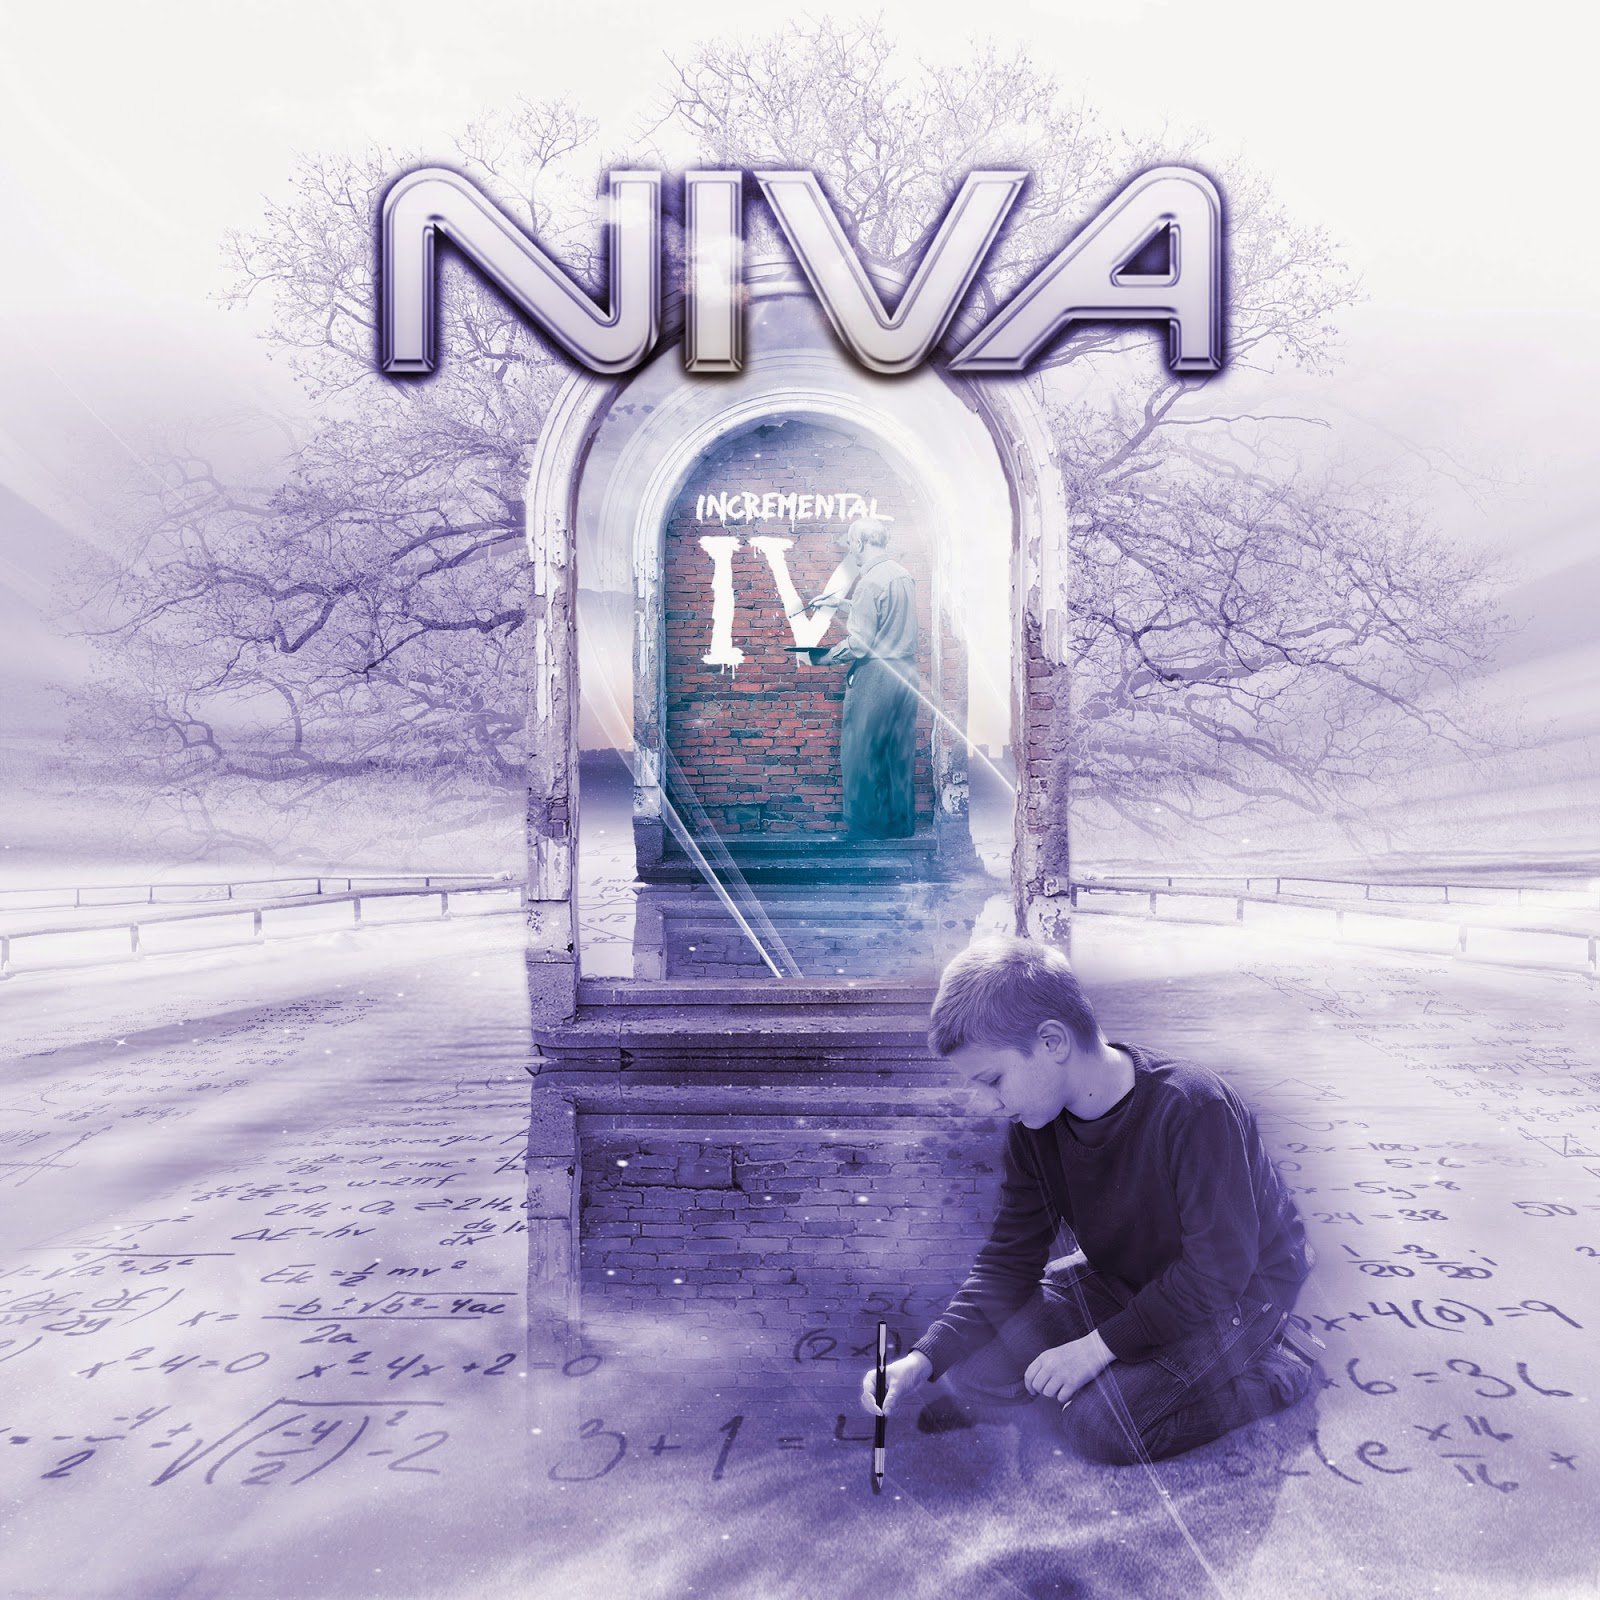 http://rock-and-metal-4-you.blogspot.de/2014/07/cd-review-niva-incremental-iv.html